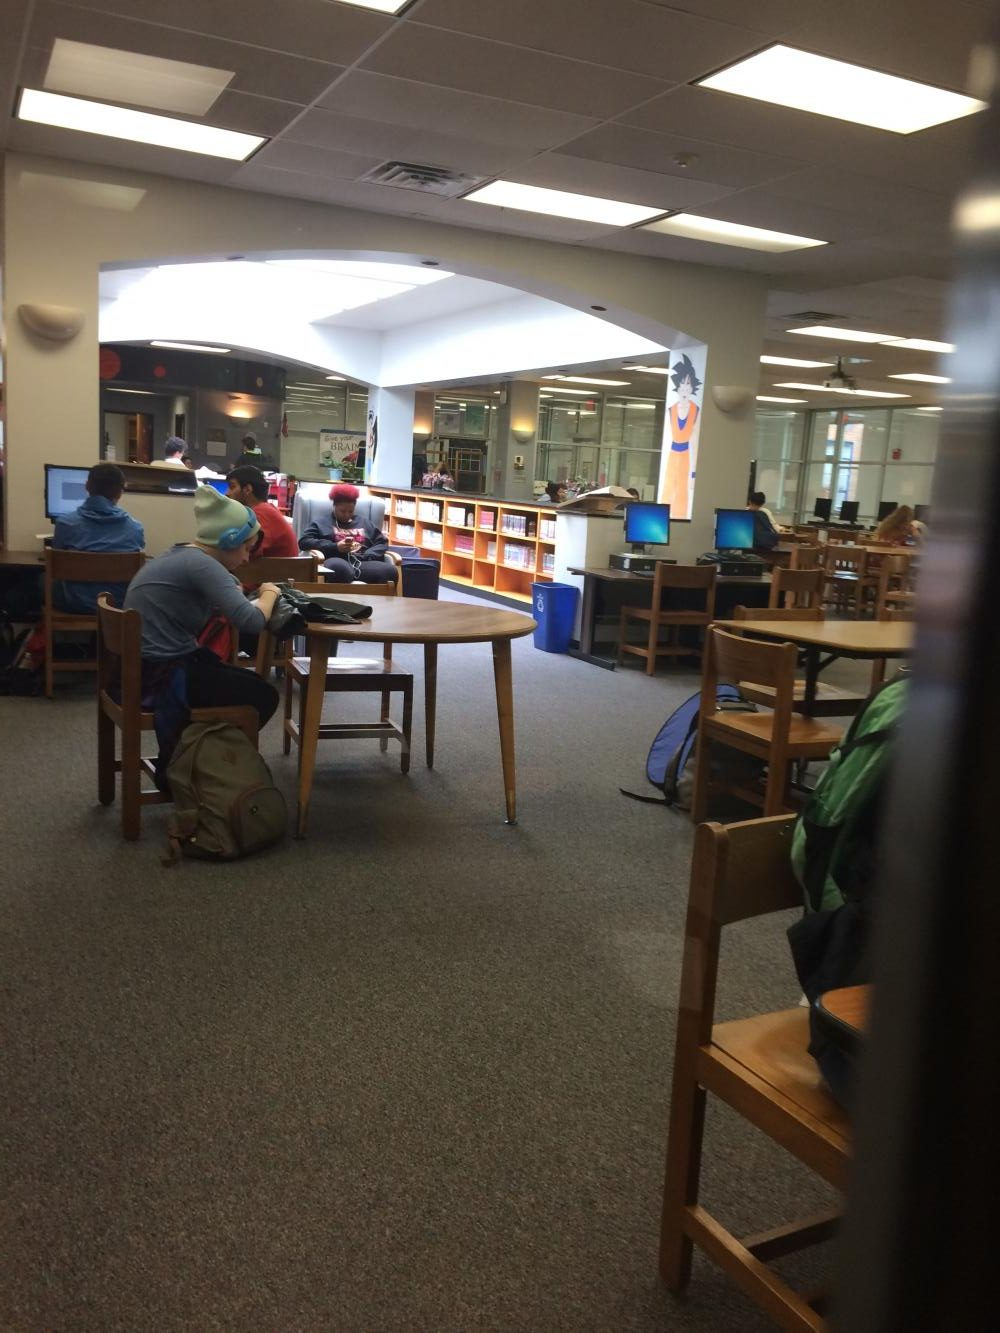 Students choose to spend time doing things in the libary such as, looking at social media on their phones, doing homework for the next class they are going too, or catching up on some well needed sleep.